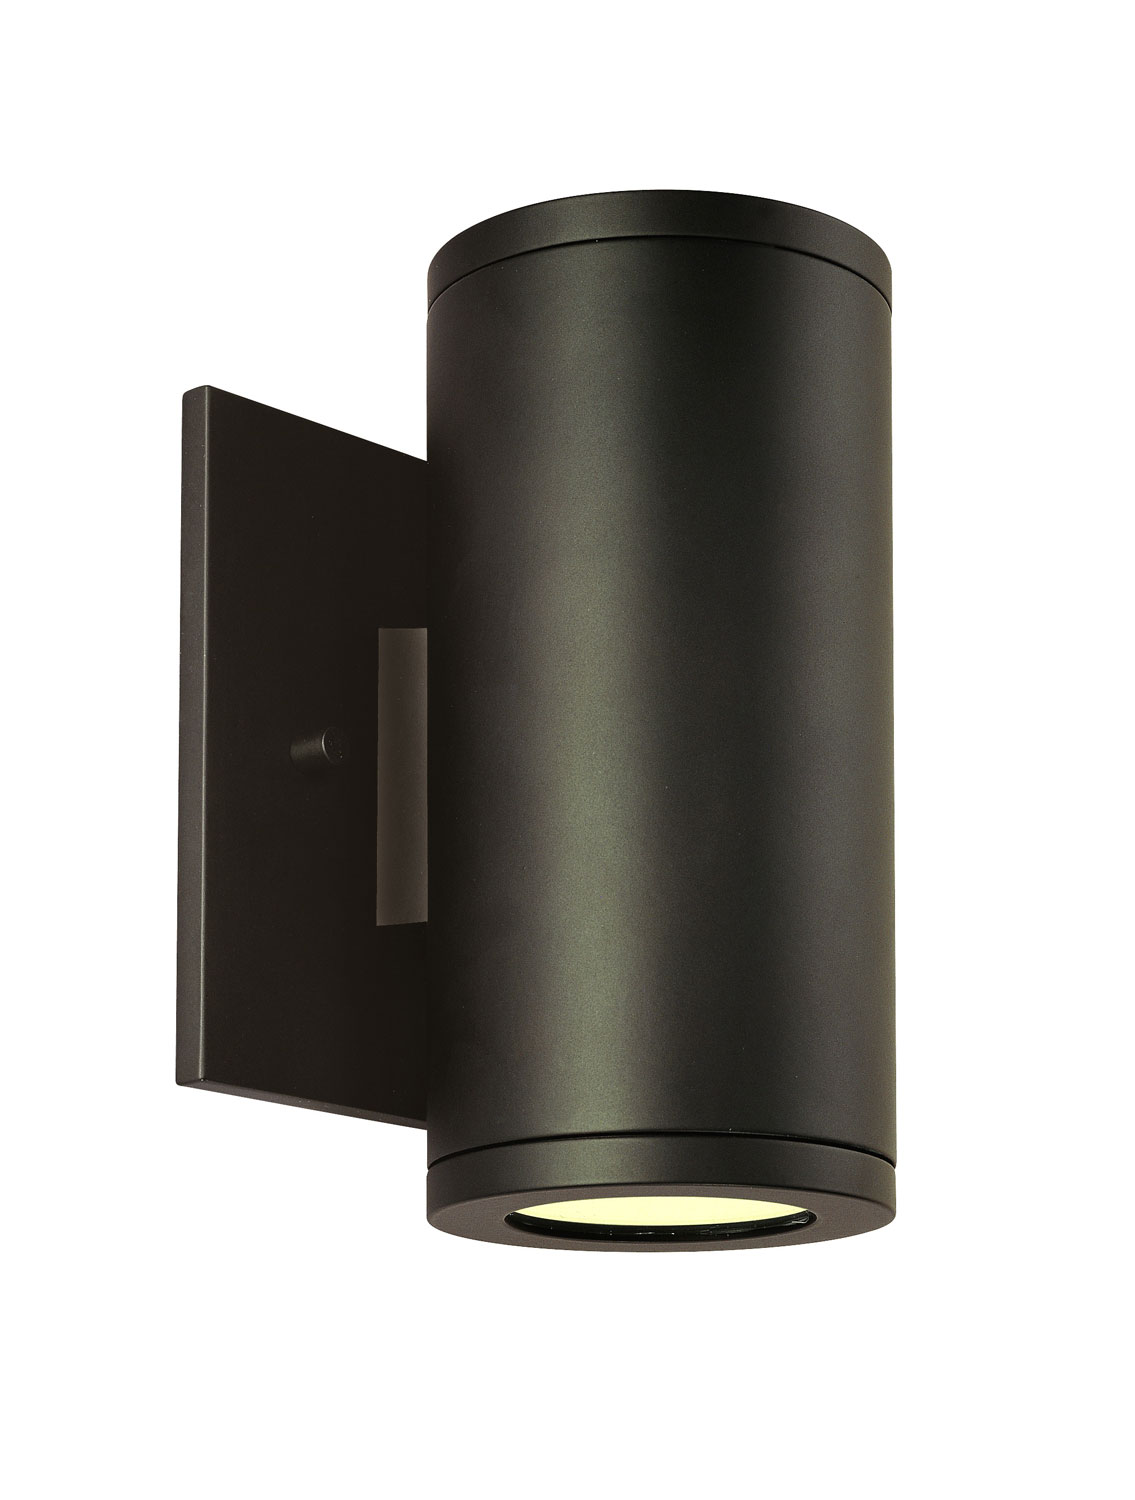 Industrial outdoor wall light 10 tips for choosing for Luminaire outdoor